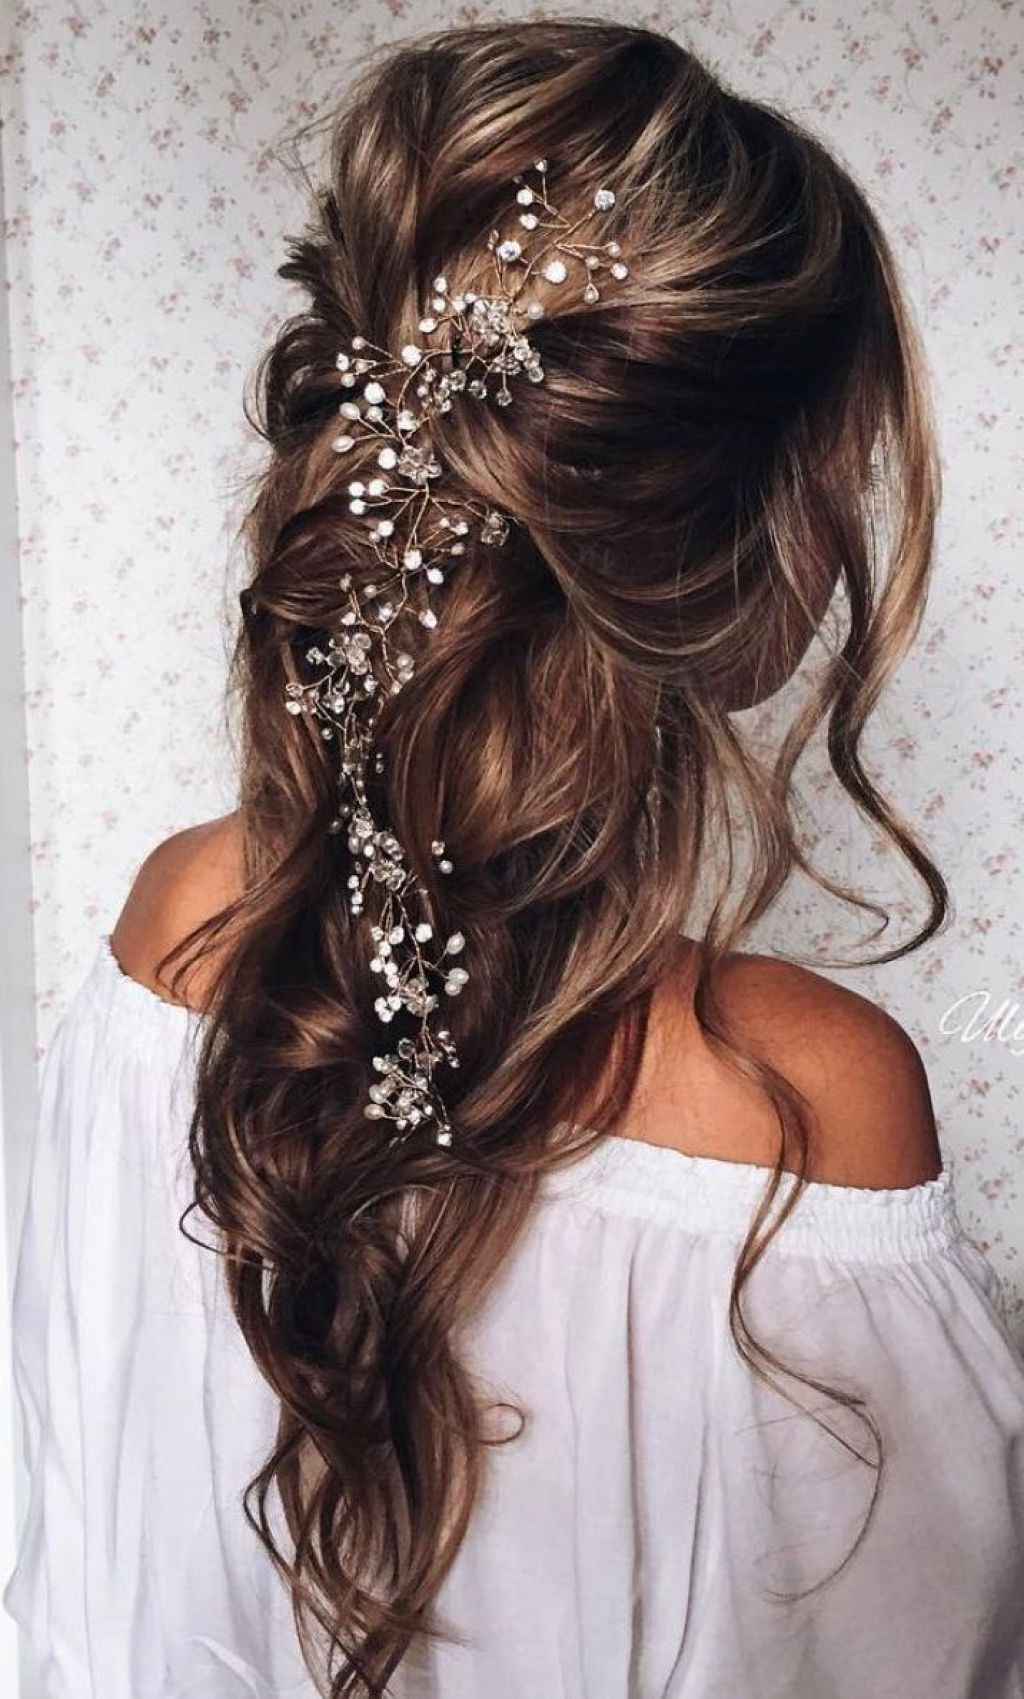 Preferred Half Up Wedding Hairstyles For Bridesmaids Regarding √ 24+ Winning Bridesmaid Hairstyles Half Up: Wedding Hairstyles (View 12 of 15)